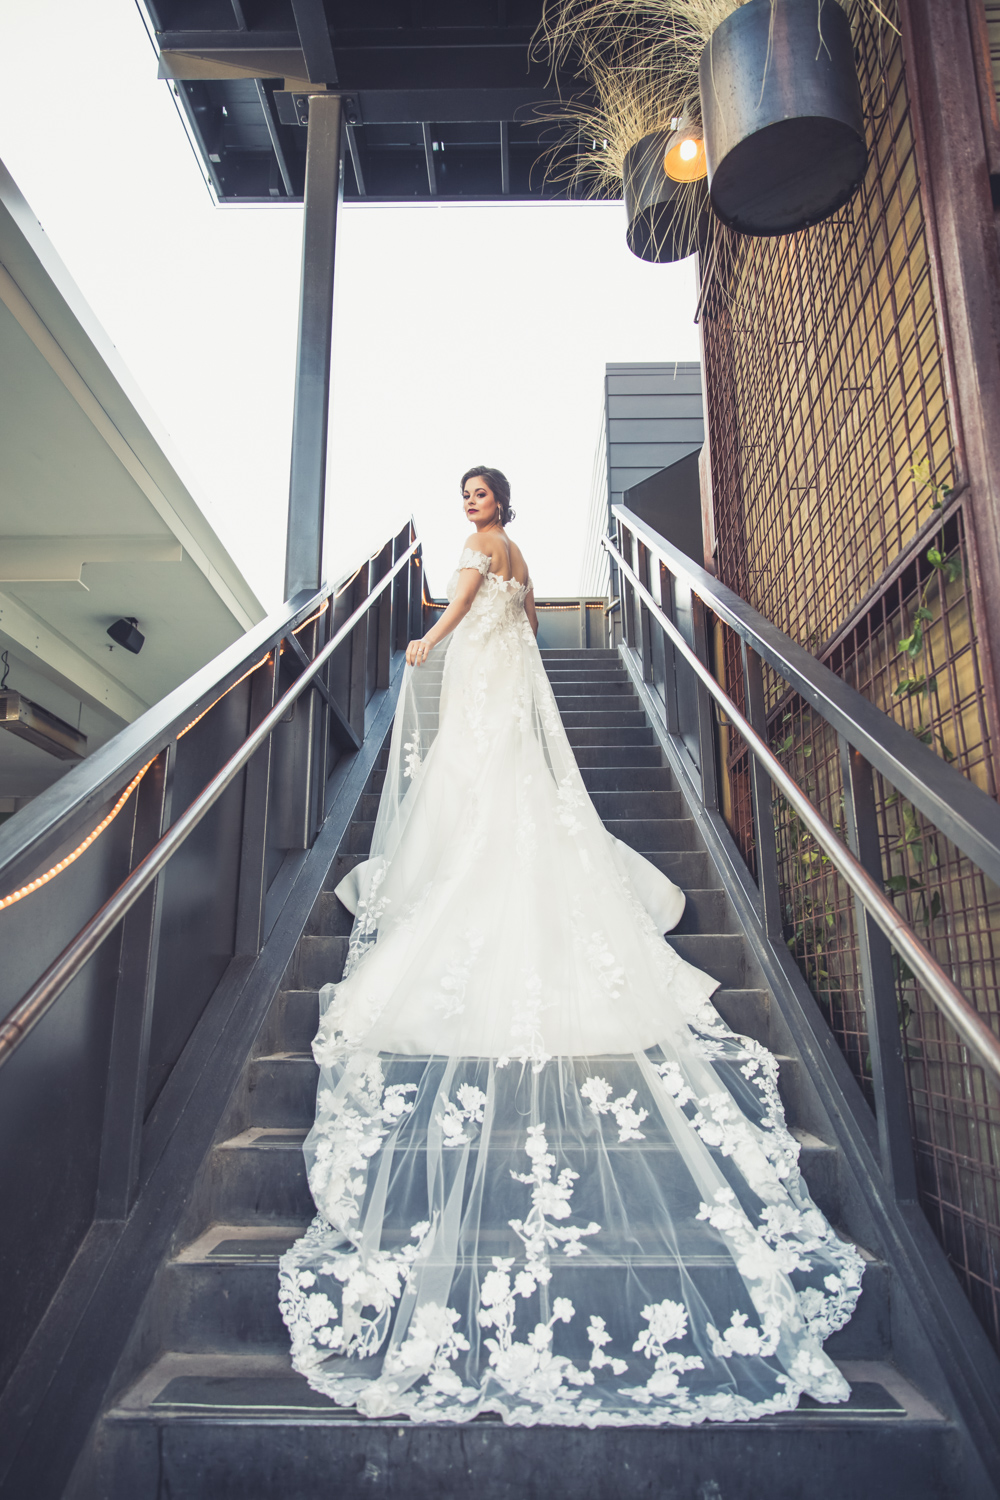 Oh wait. it just did - add a Bridal cape and you have us all heart eyes over here! Bridal Gown and Cape:  Gigi Bridal